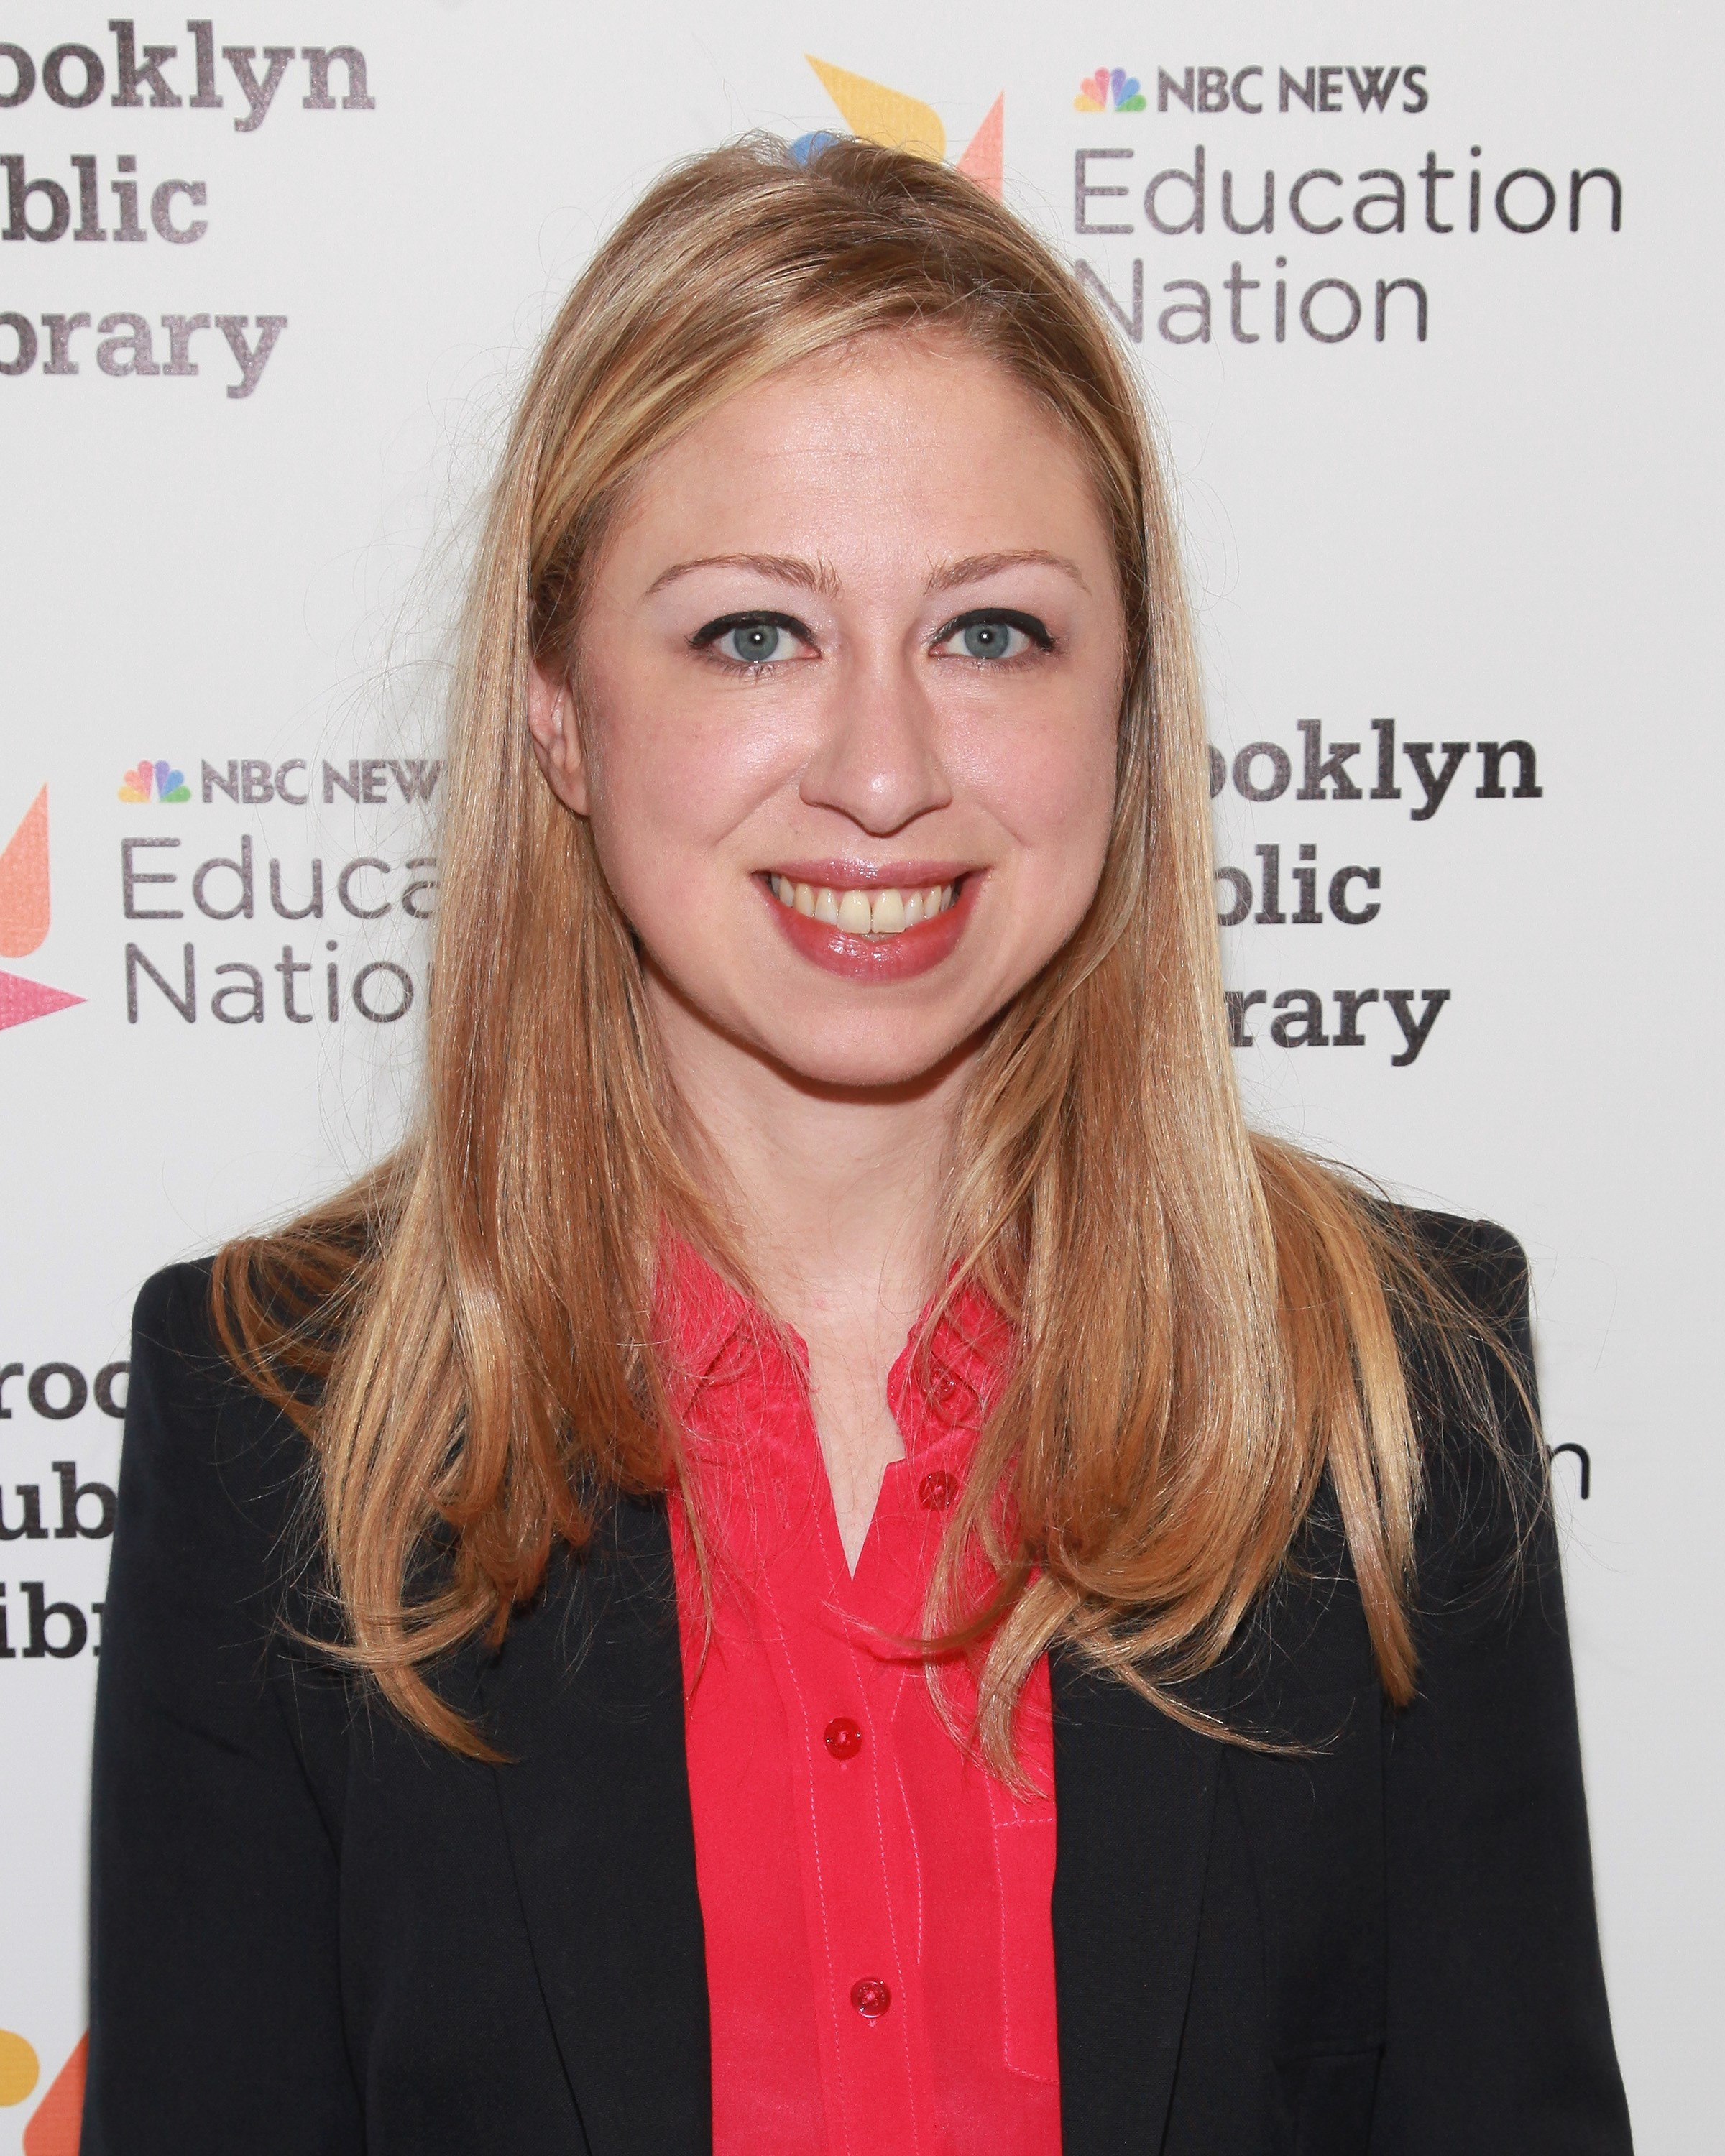 Chelsea Clinton | Known people - famous people news and ...